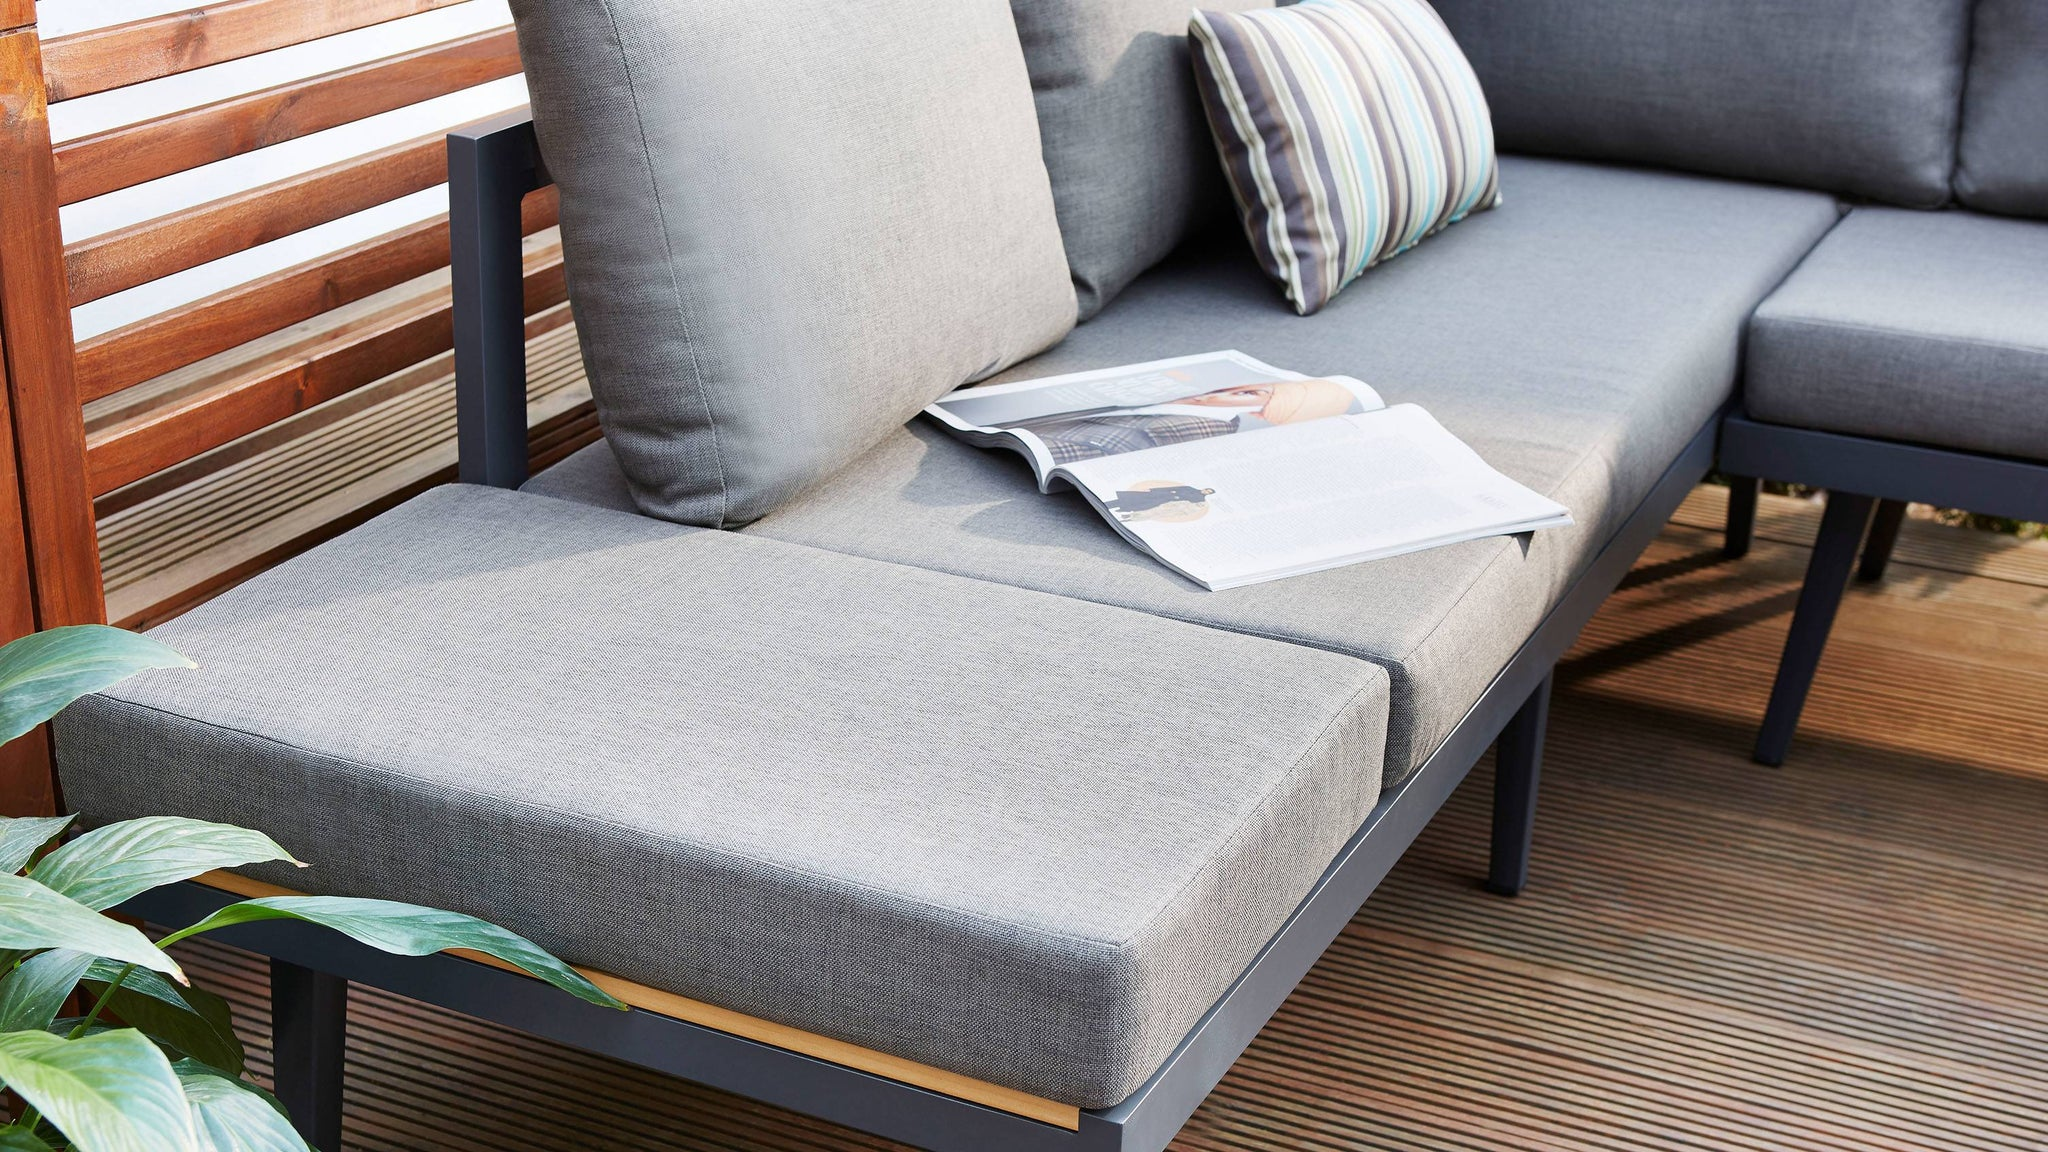 Removable cushion to coffee table bench